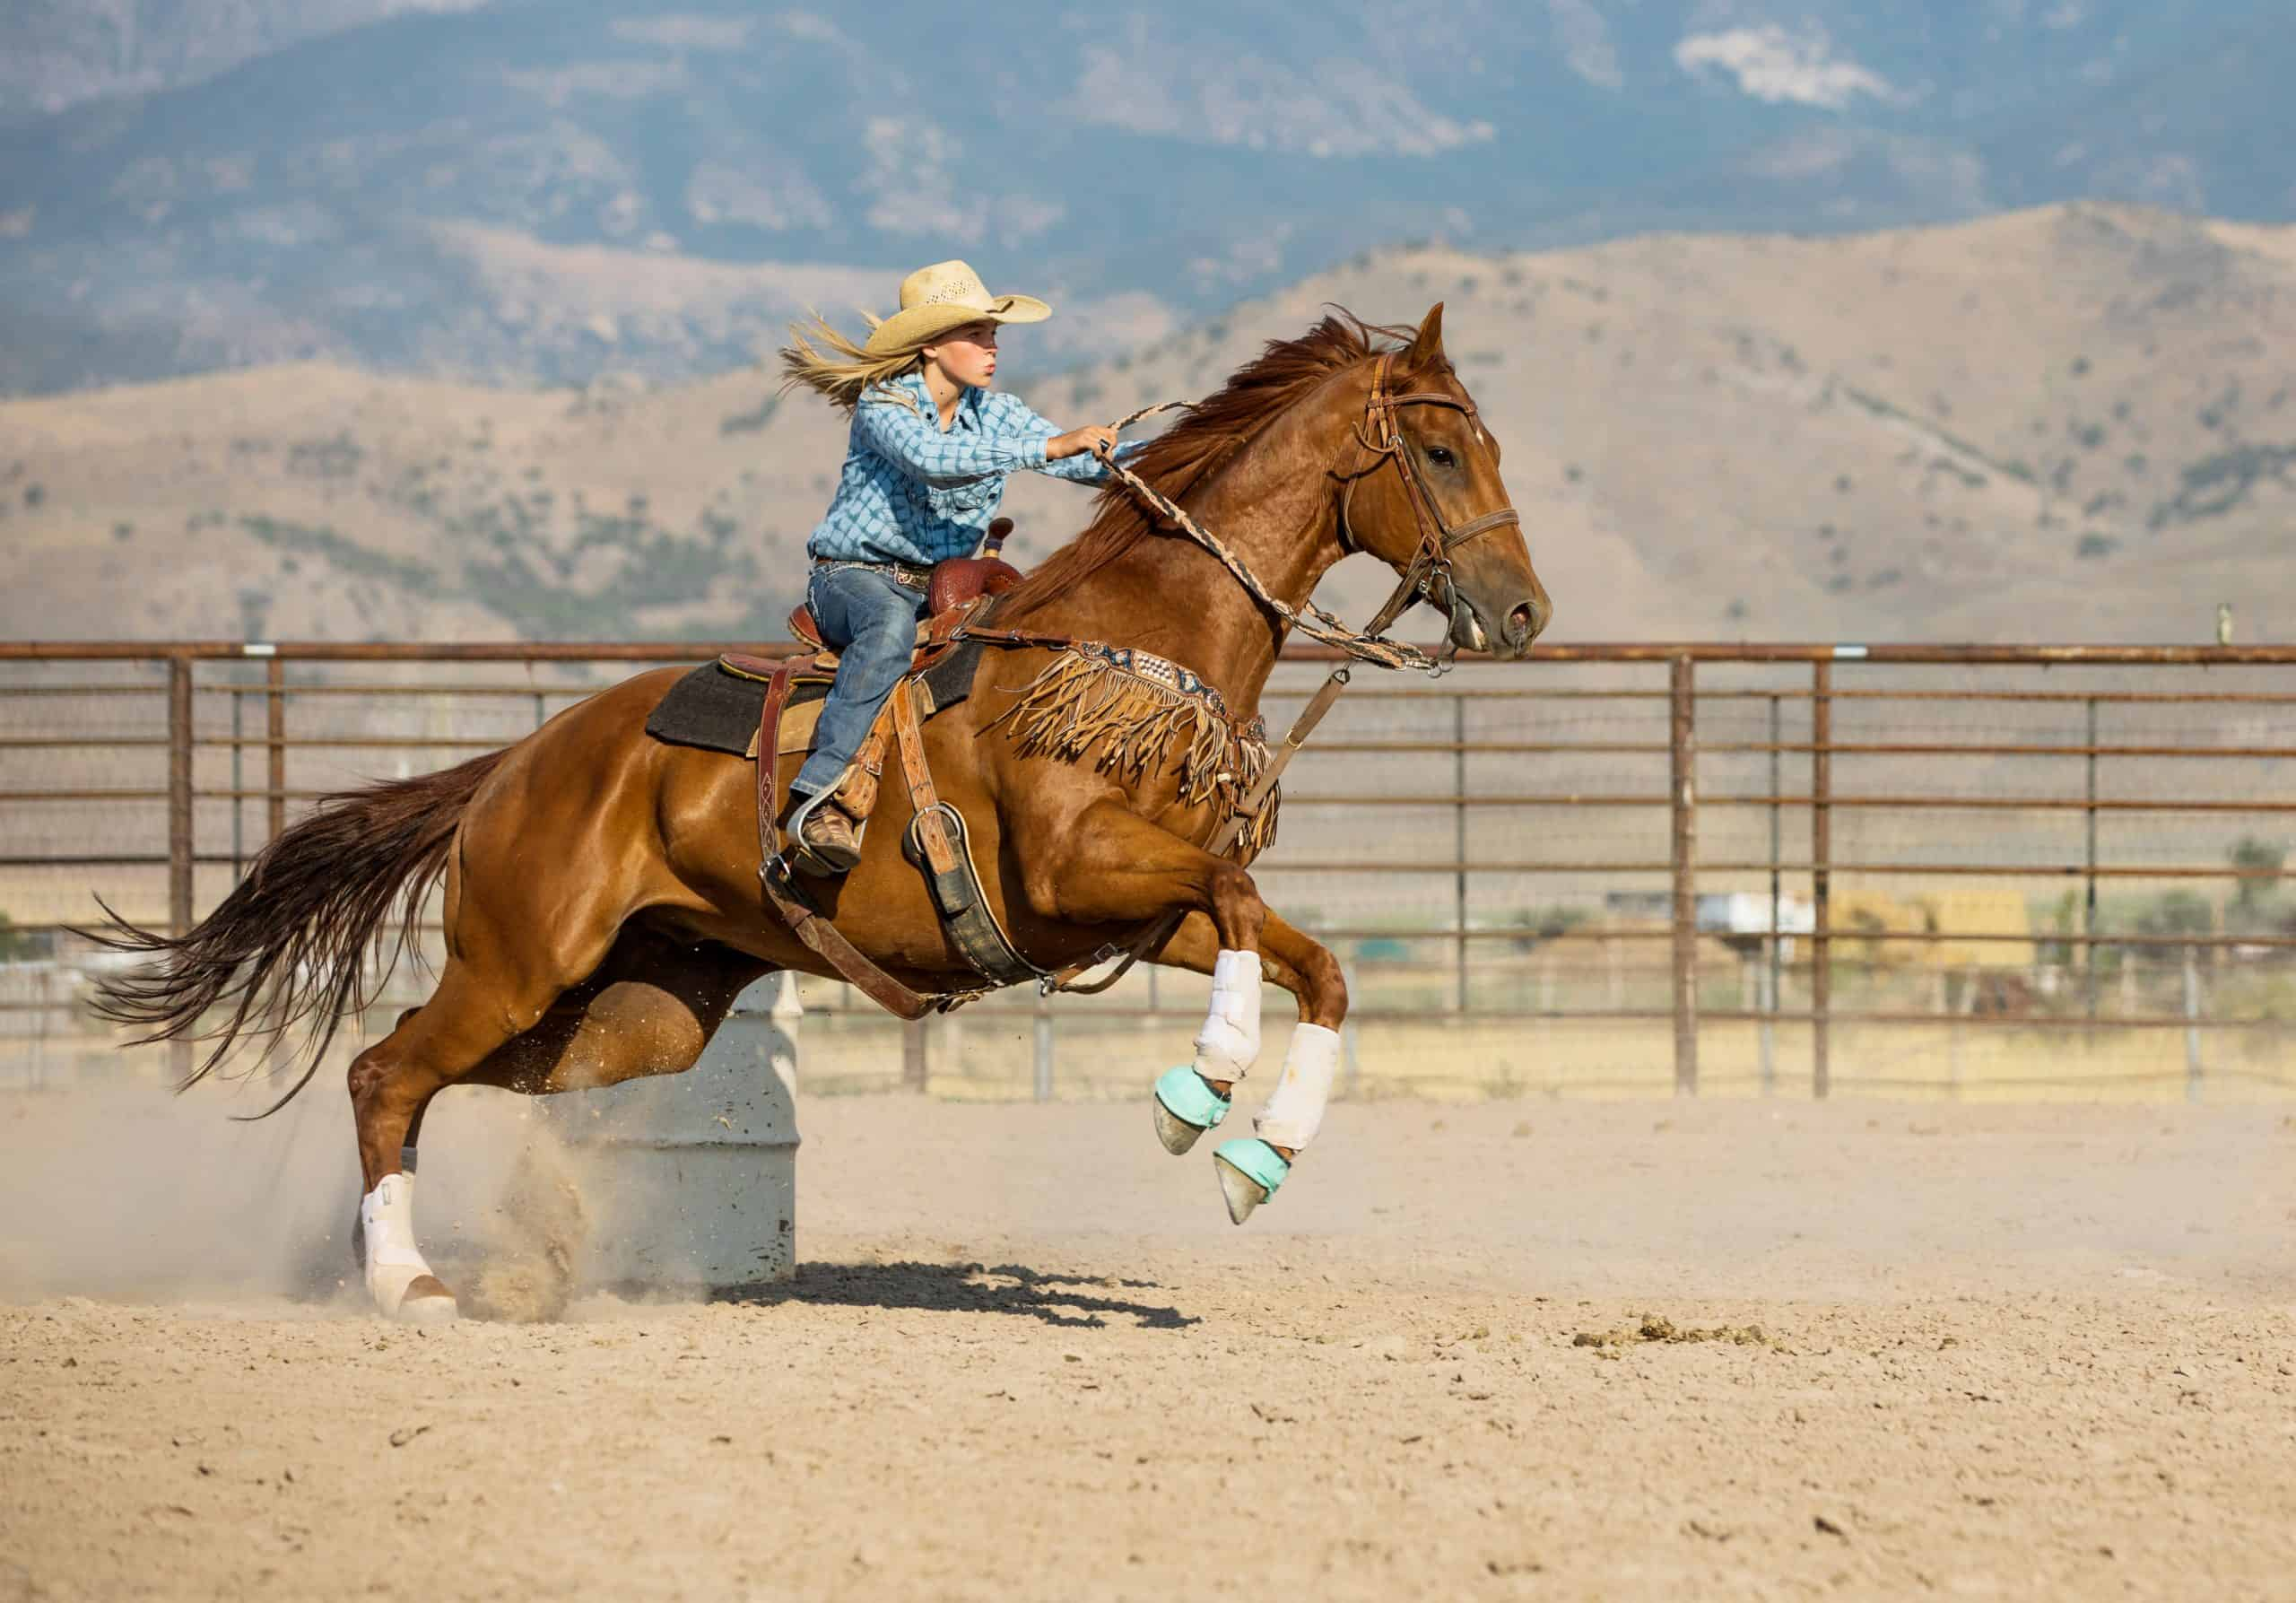 A teenage cowgirl barrel racing with her beautiful horse.